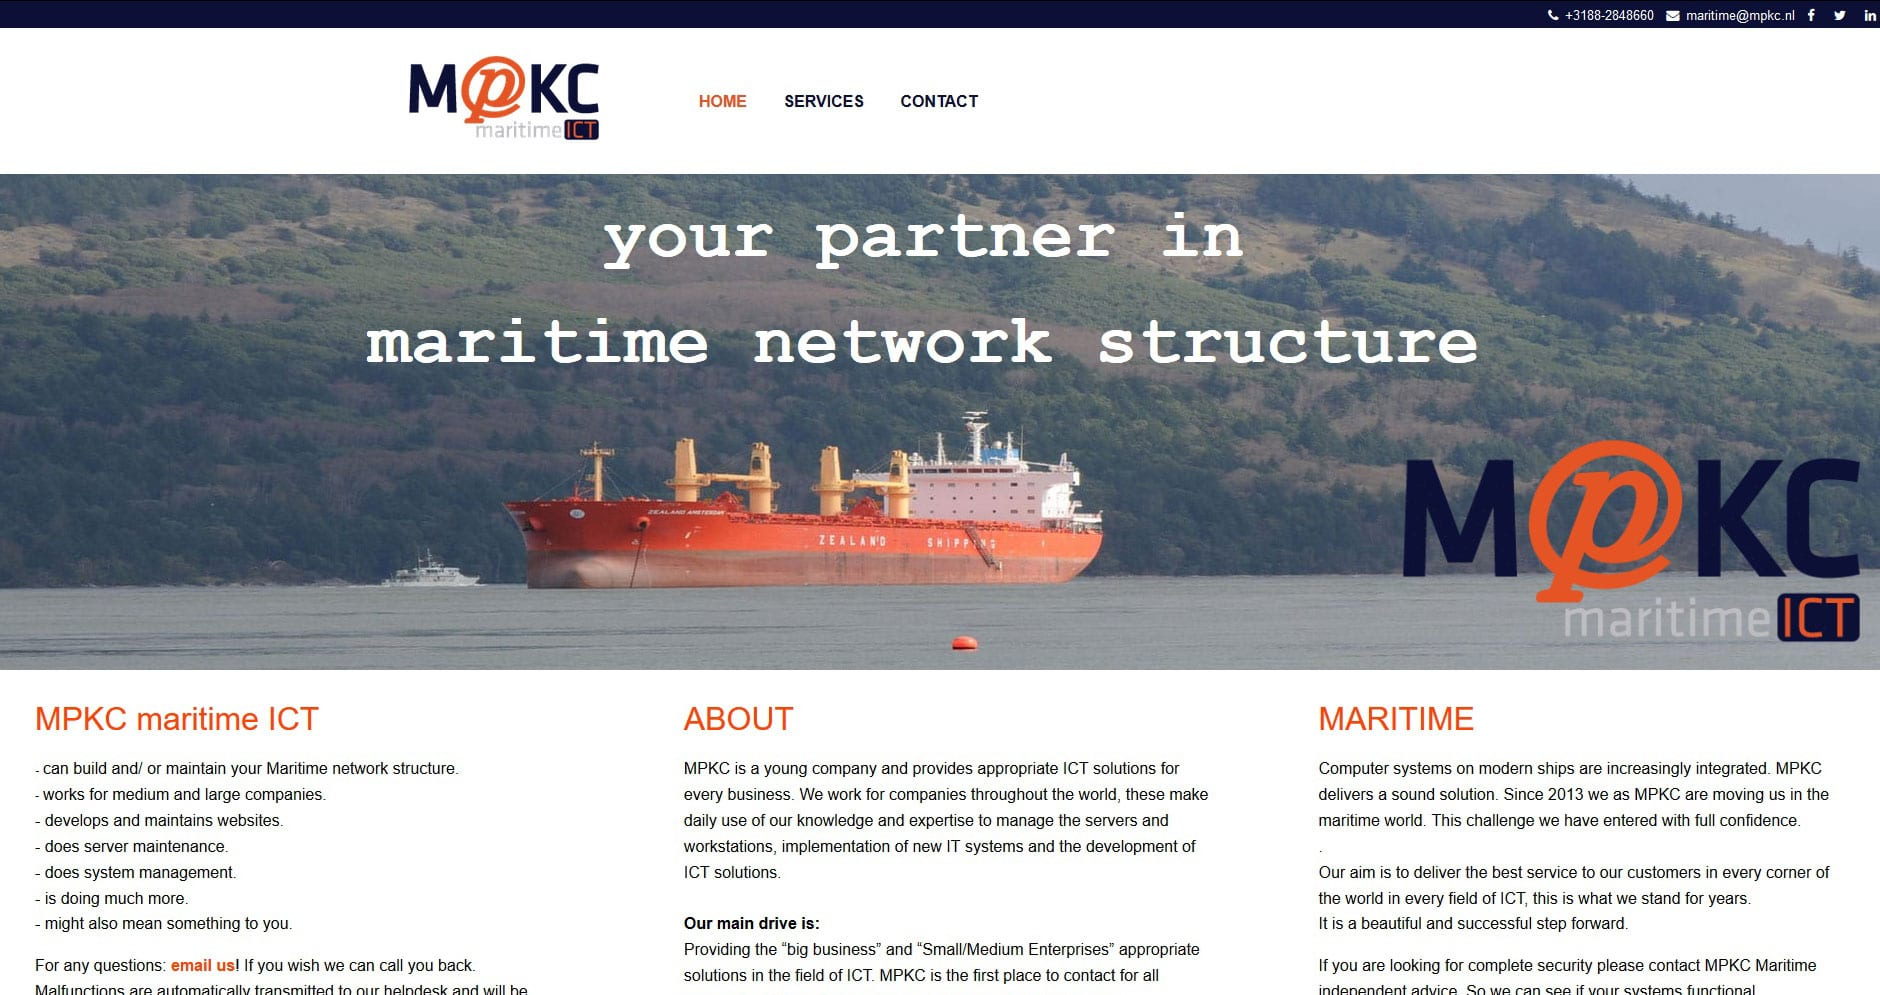 MPKC Maritime ICT